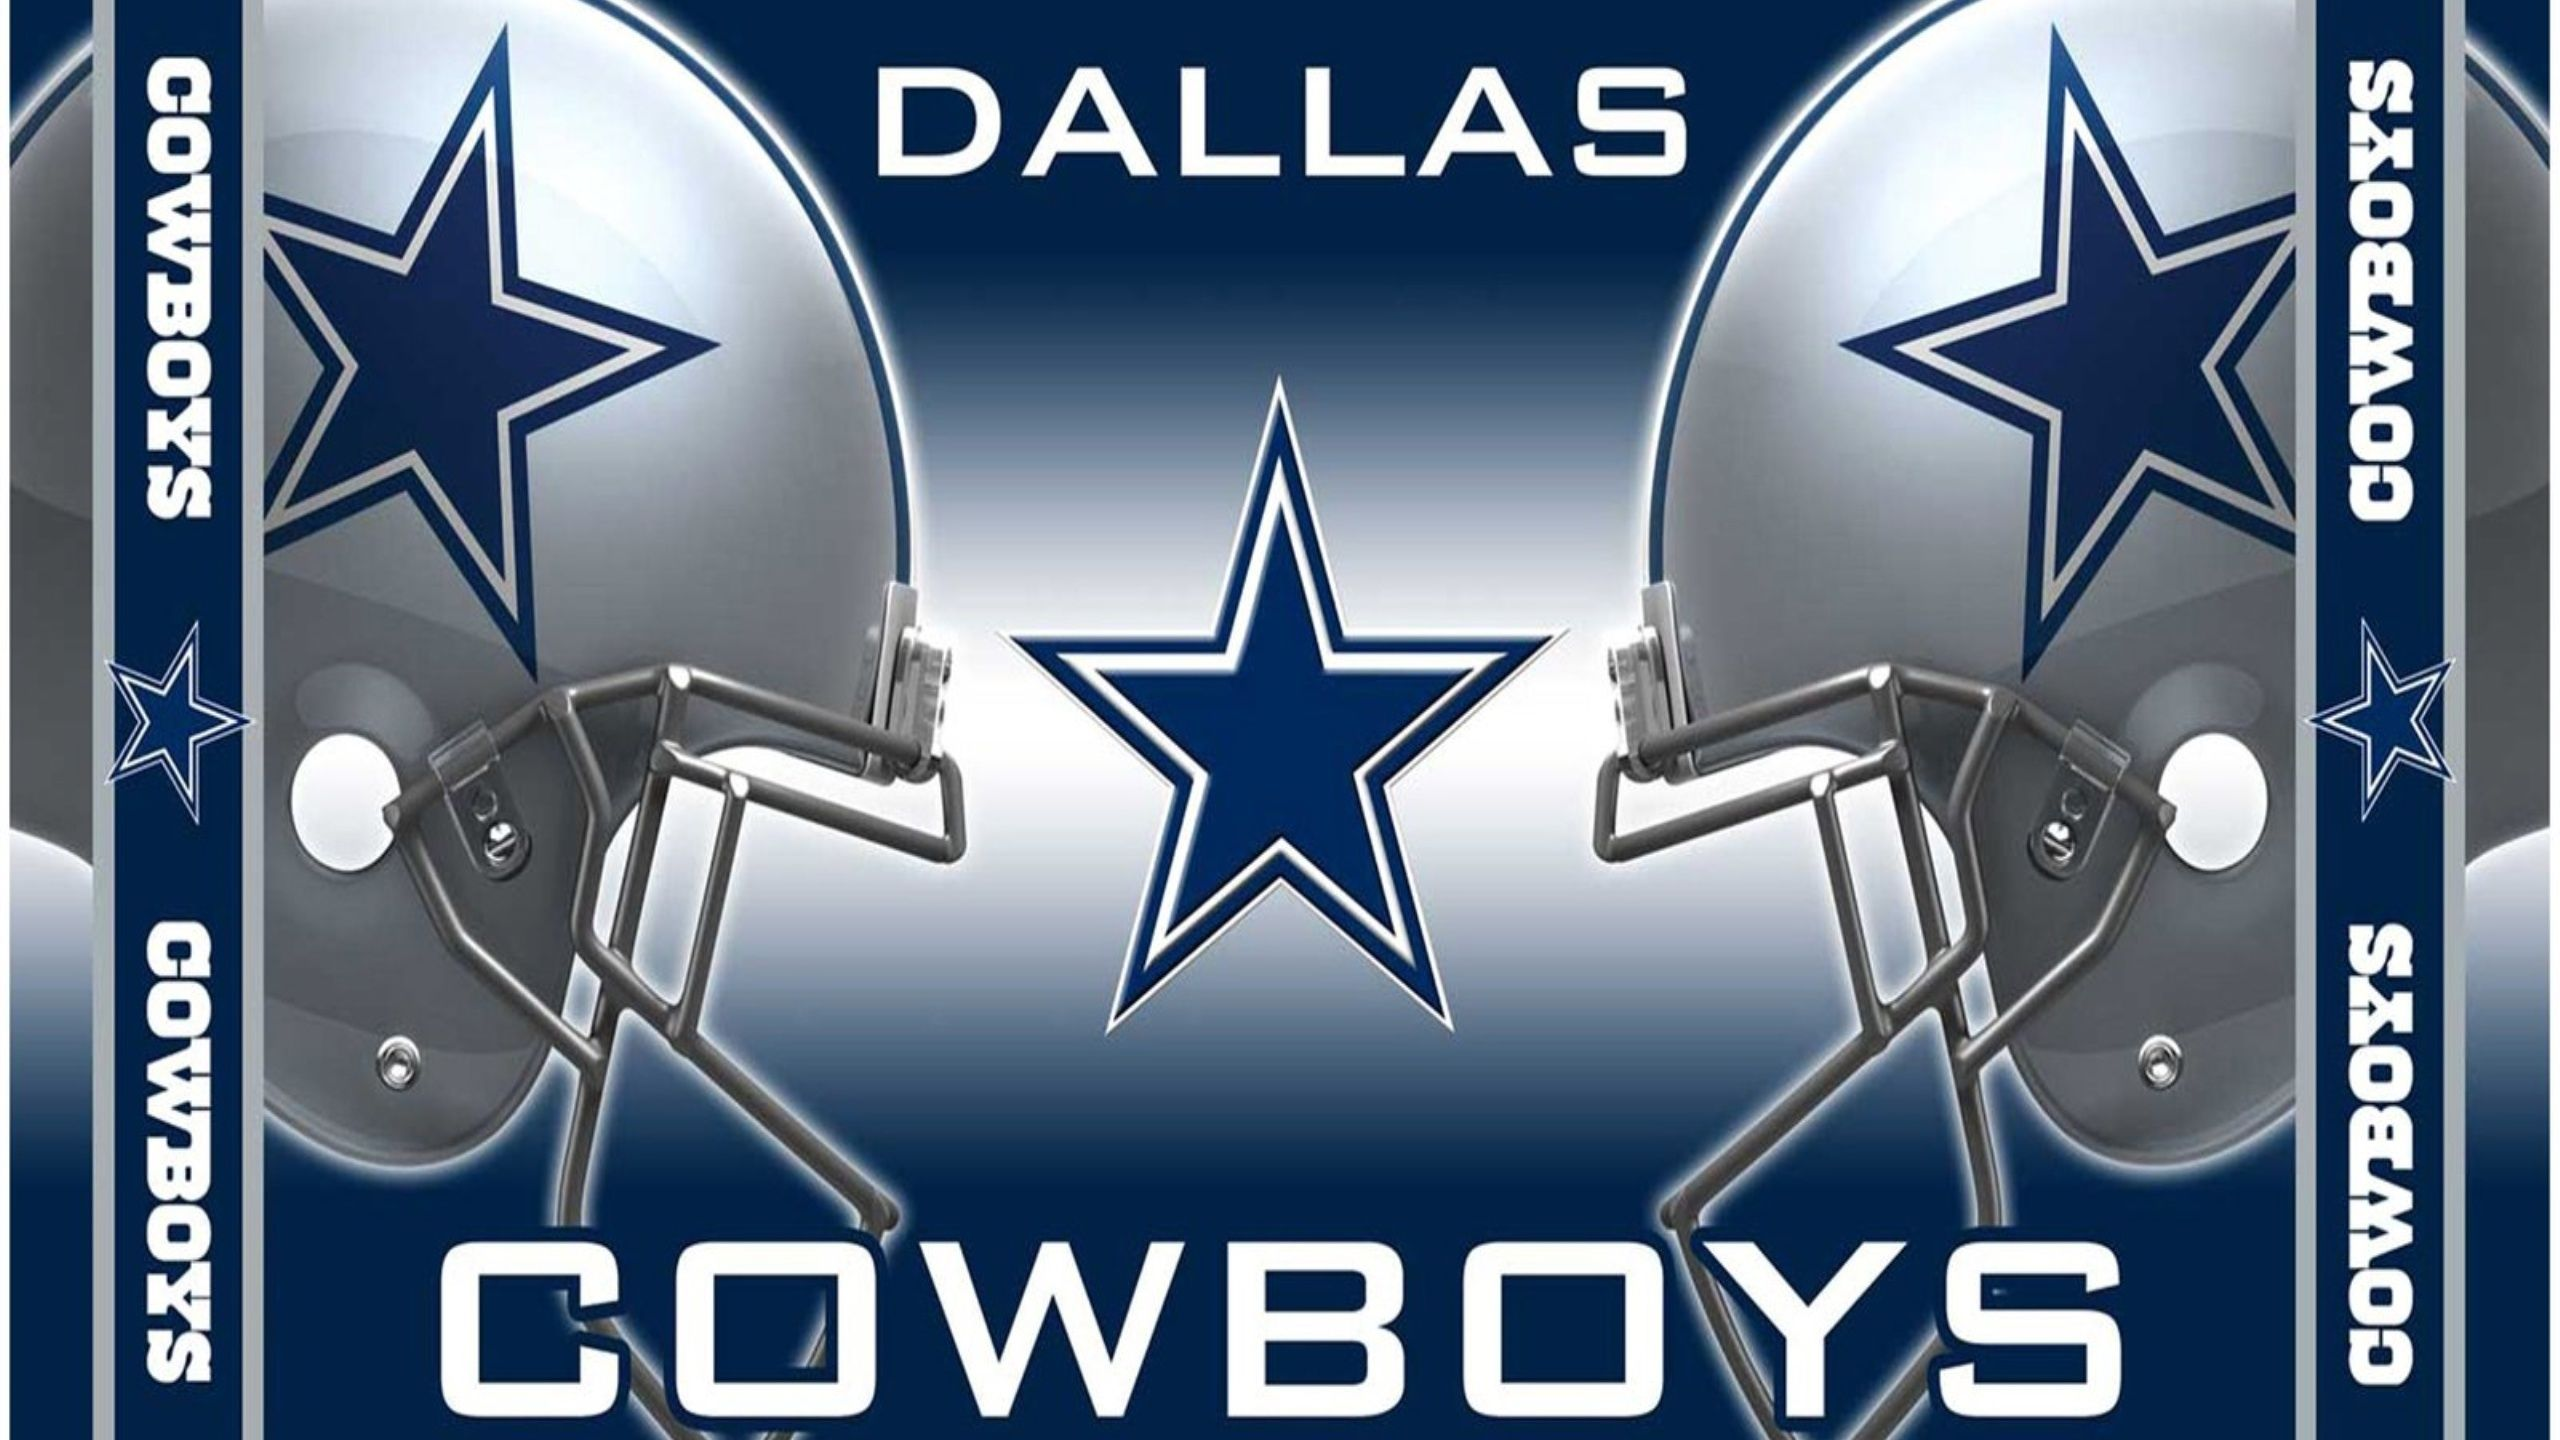 Wallpaper cowboys free wallpaper download 25601440 dallas cowboys wallpaper cowboys free wallpaper download 25601440 dallas cowboys helmet wallpapers 38 wallpapers voltagebd Gallery